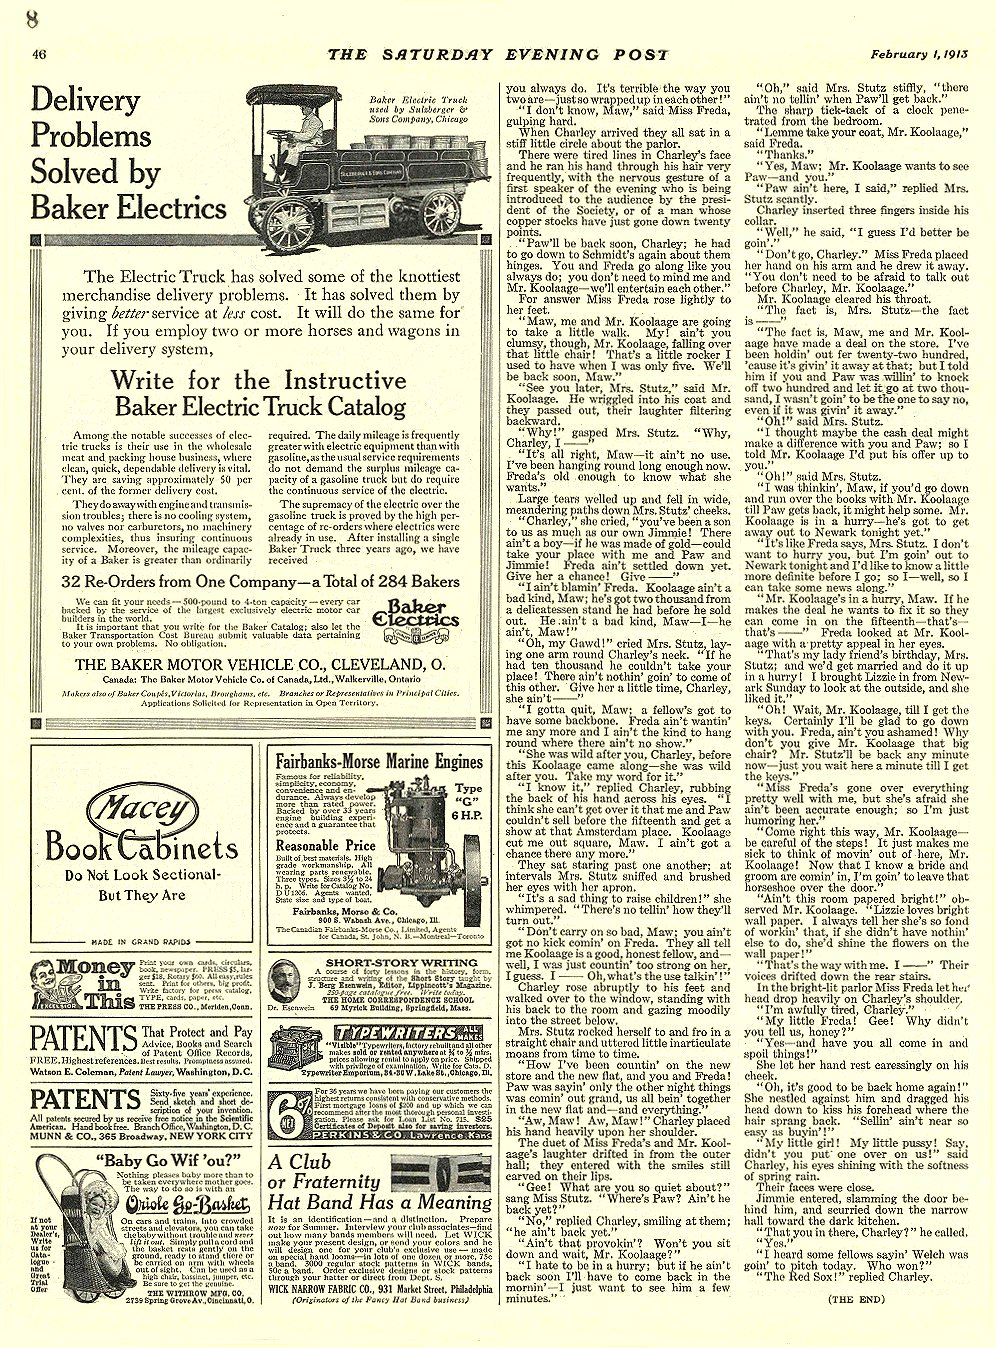 1913 2 1 BAKER Electric Truck Delivery Problems Solved by Baker THE BAKER MOTOR-VEHICLE CO. Cleveland, OHIO THE SATURDAY EVENING POST February 1, 1913 9.75″x13.5″ page 46